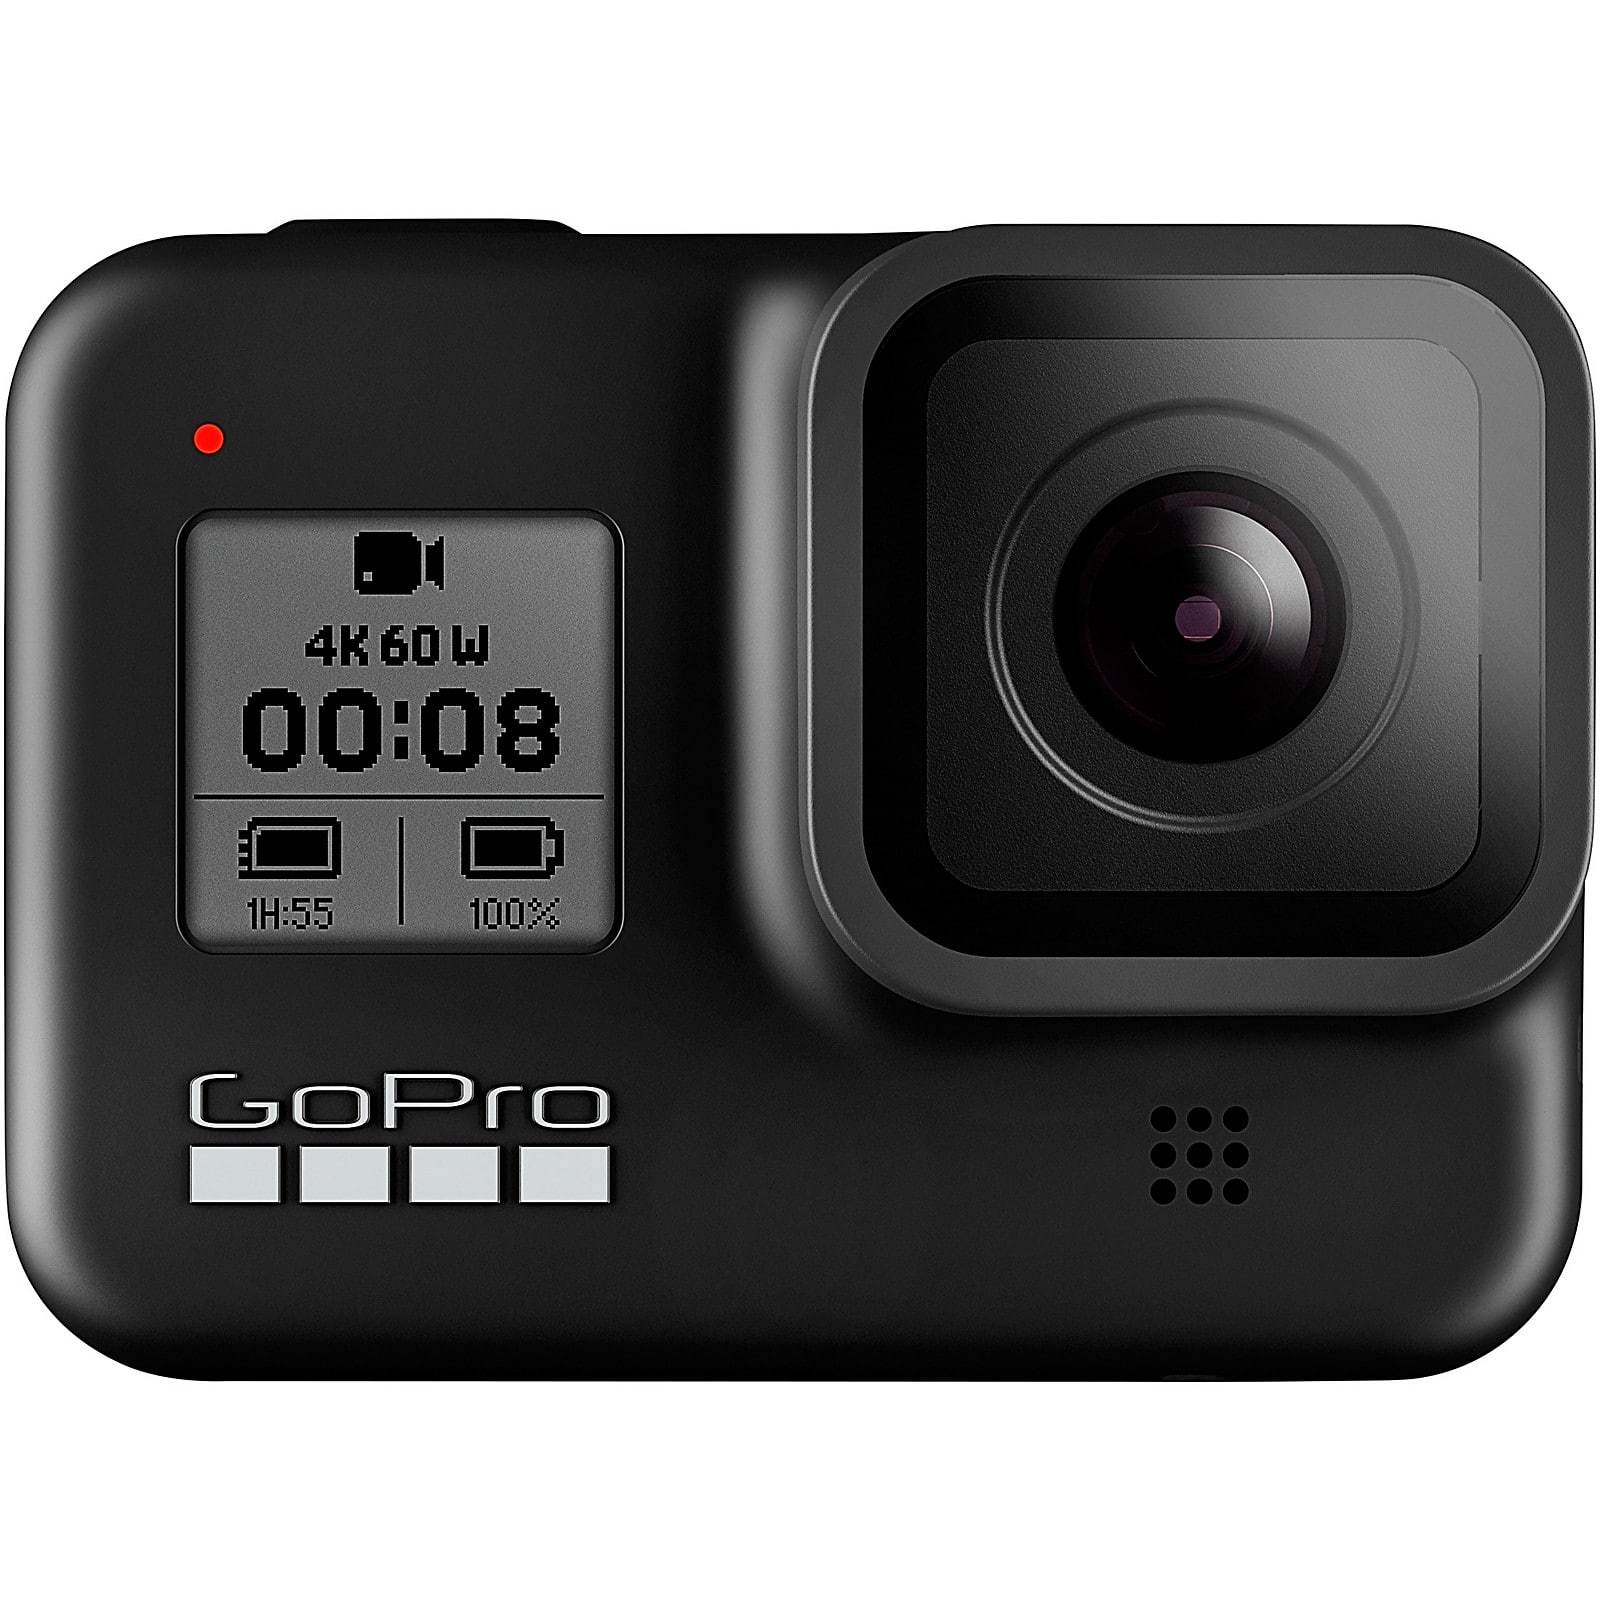 Gopro Hero 8 Black $289.99 free shipping from Musician's Friend